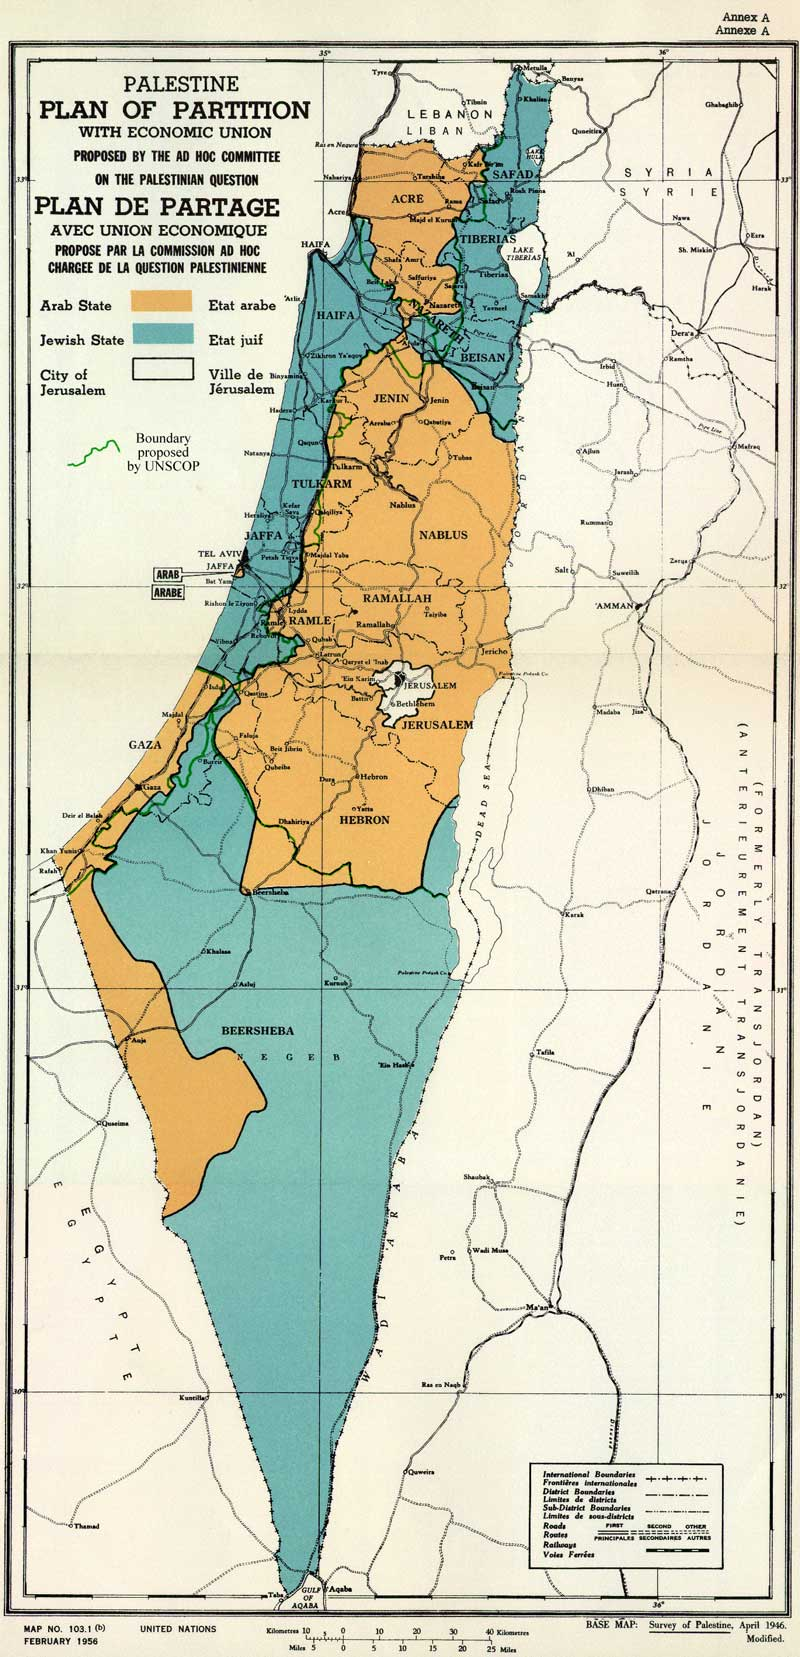 UN Partition Plan for Palestine, November 1947. Credit: UN General Assembly 181 (II)